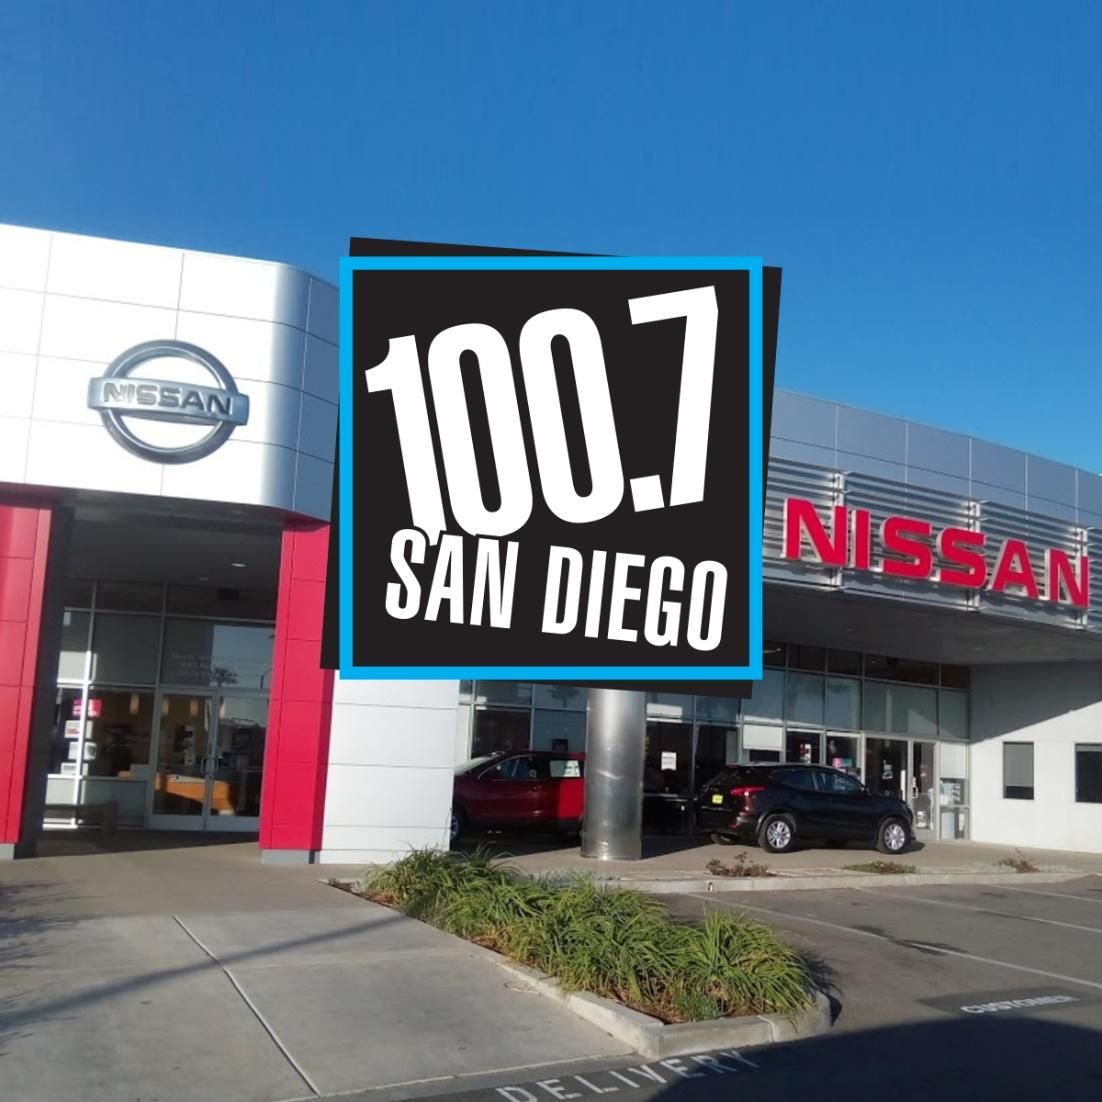 Radio station 100.7 San Diego will be at Mossy Nissan